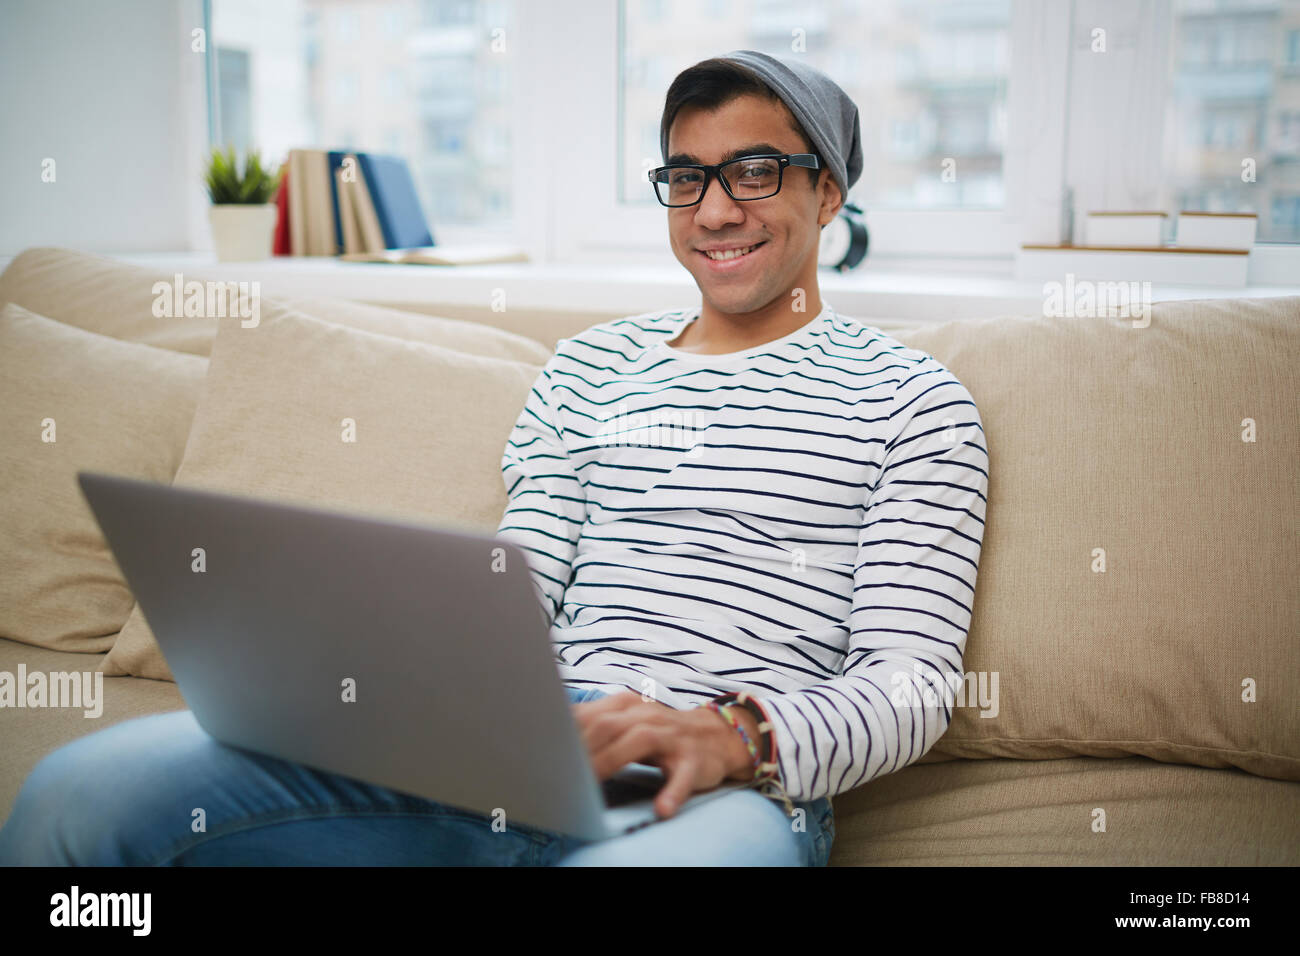 Handsome guy in casual-wear networking and looking at camera - Stock Image